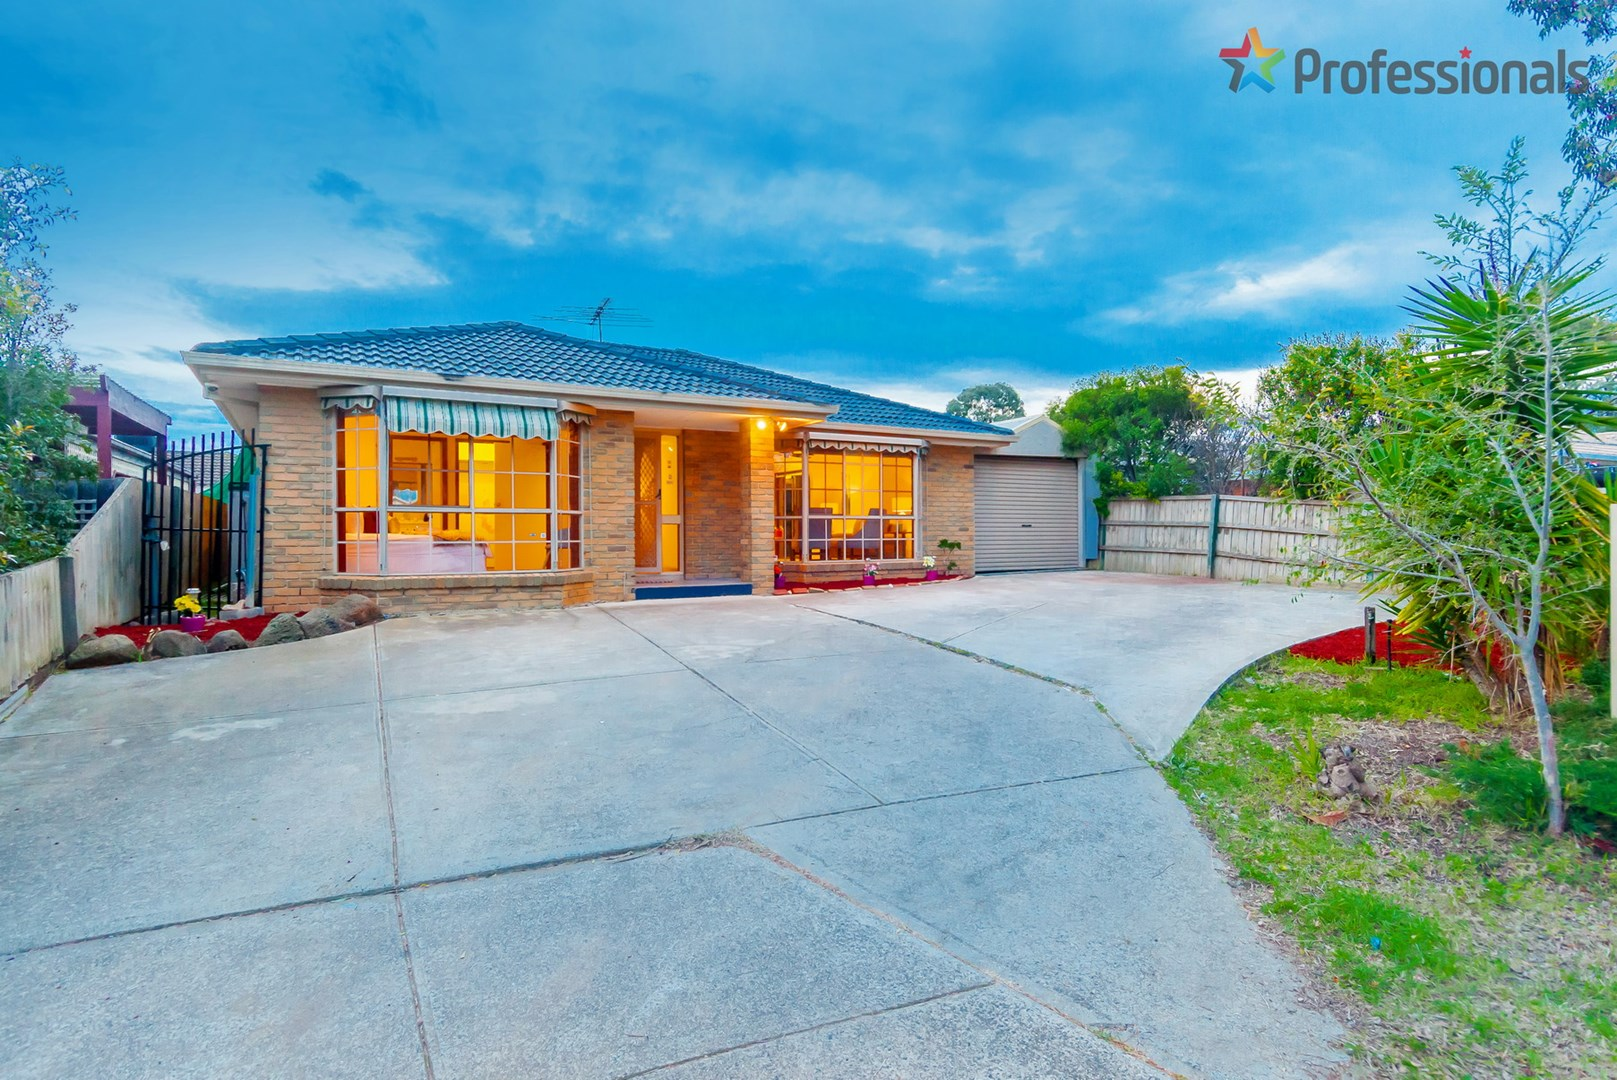 UNDER CONTRACT BY VISH SIDHU